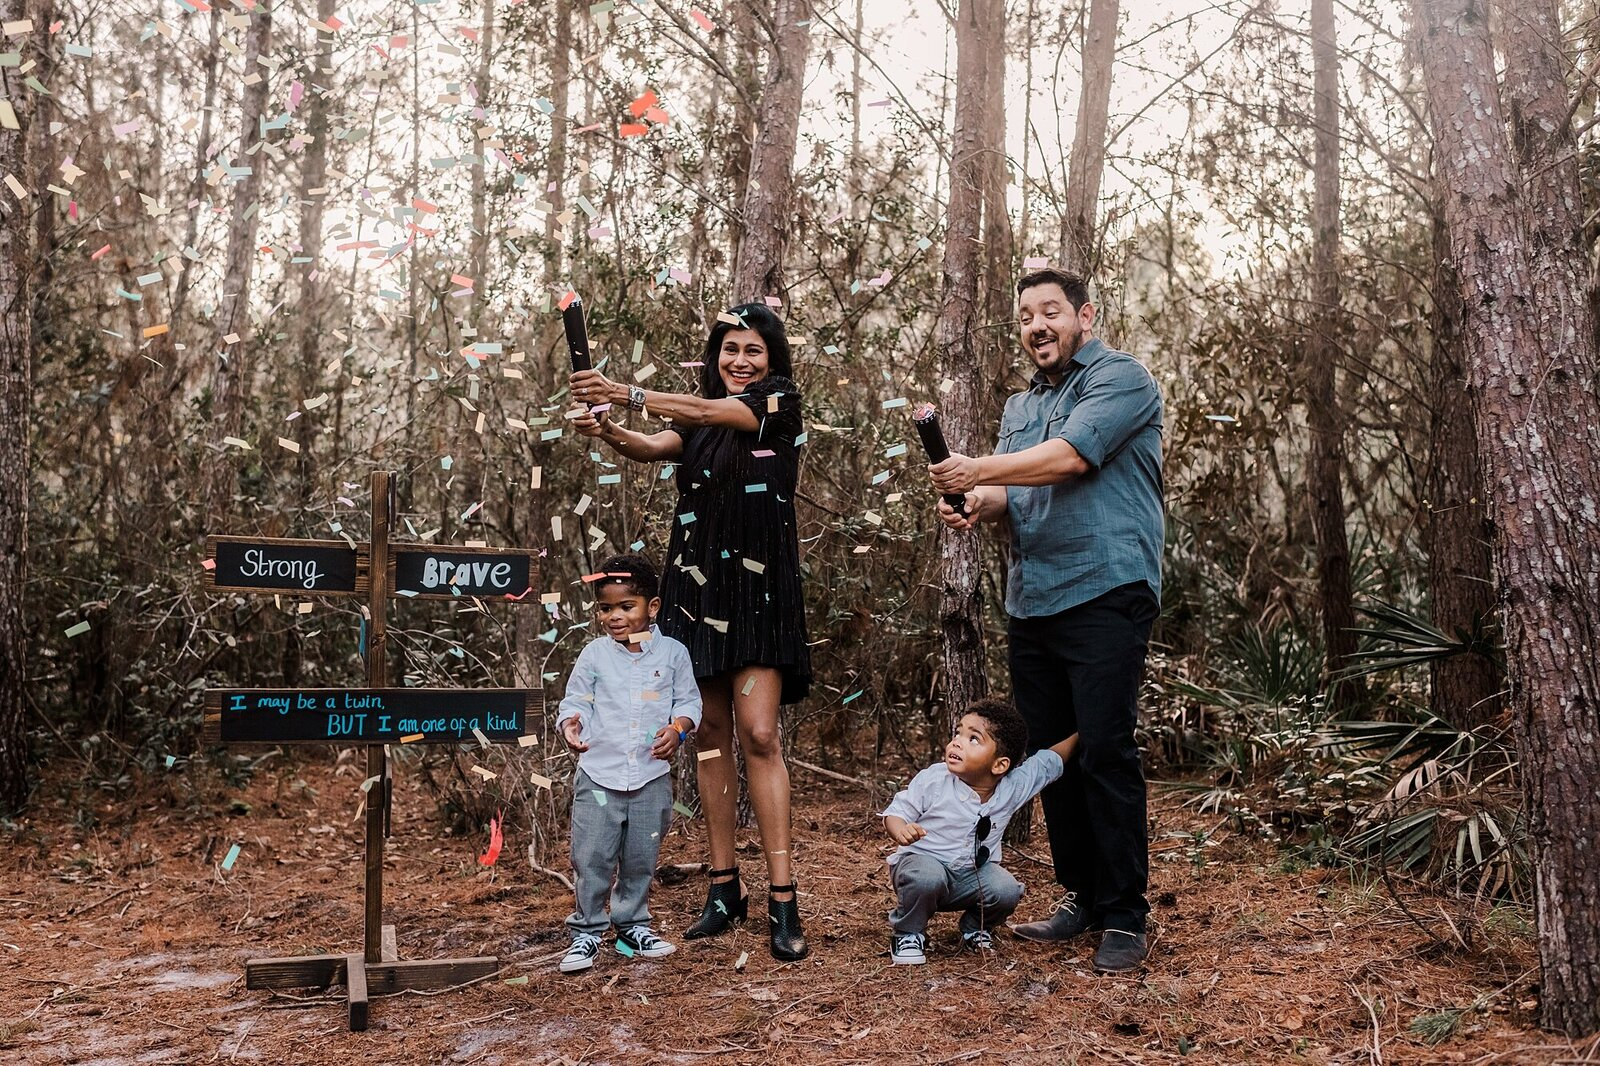 shadow-bay-park-family-session-orlando-haleigh-nicole-photography_0023